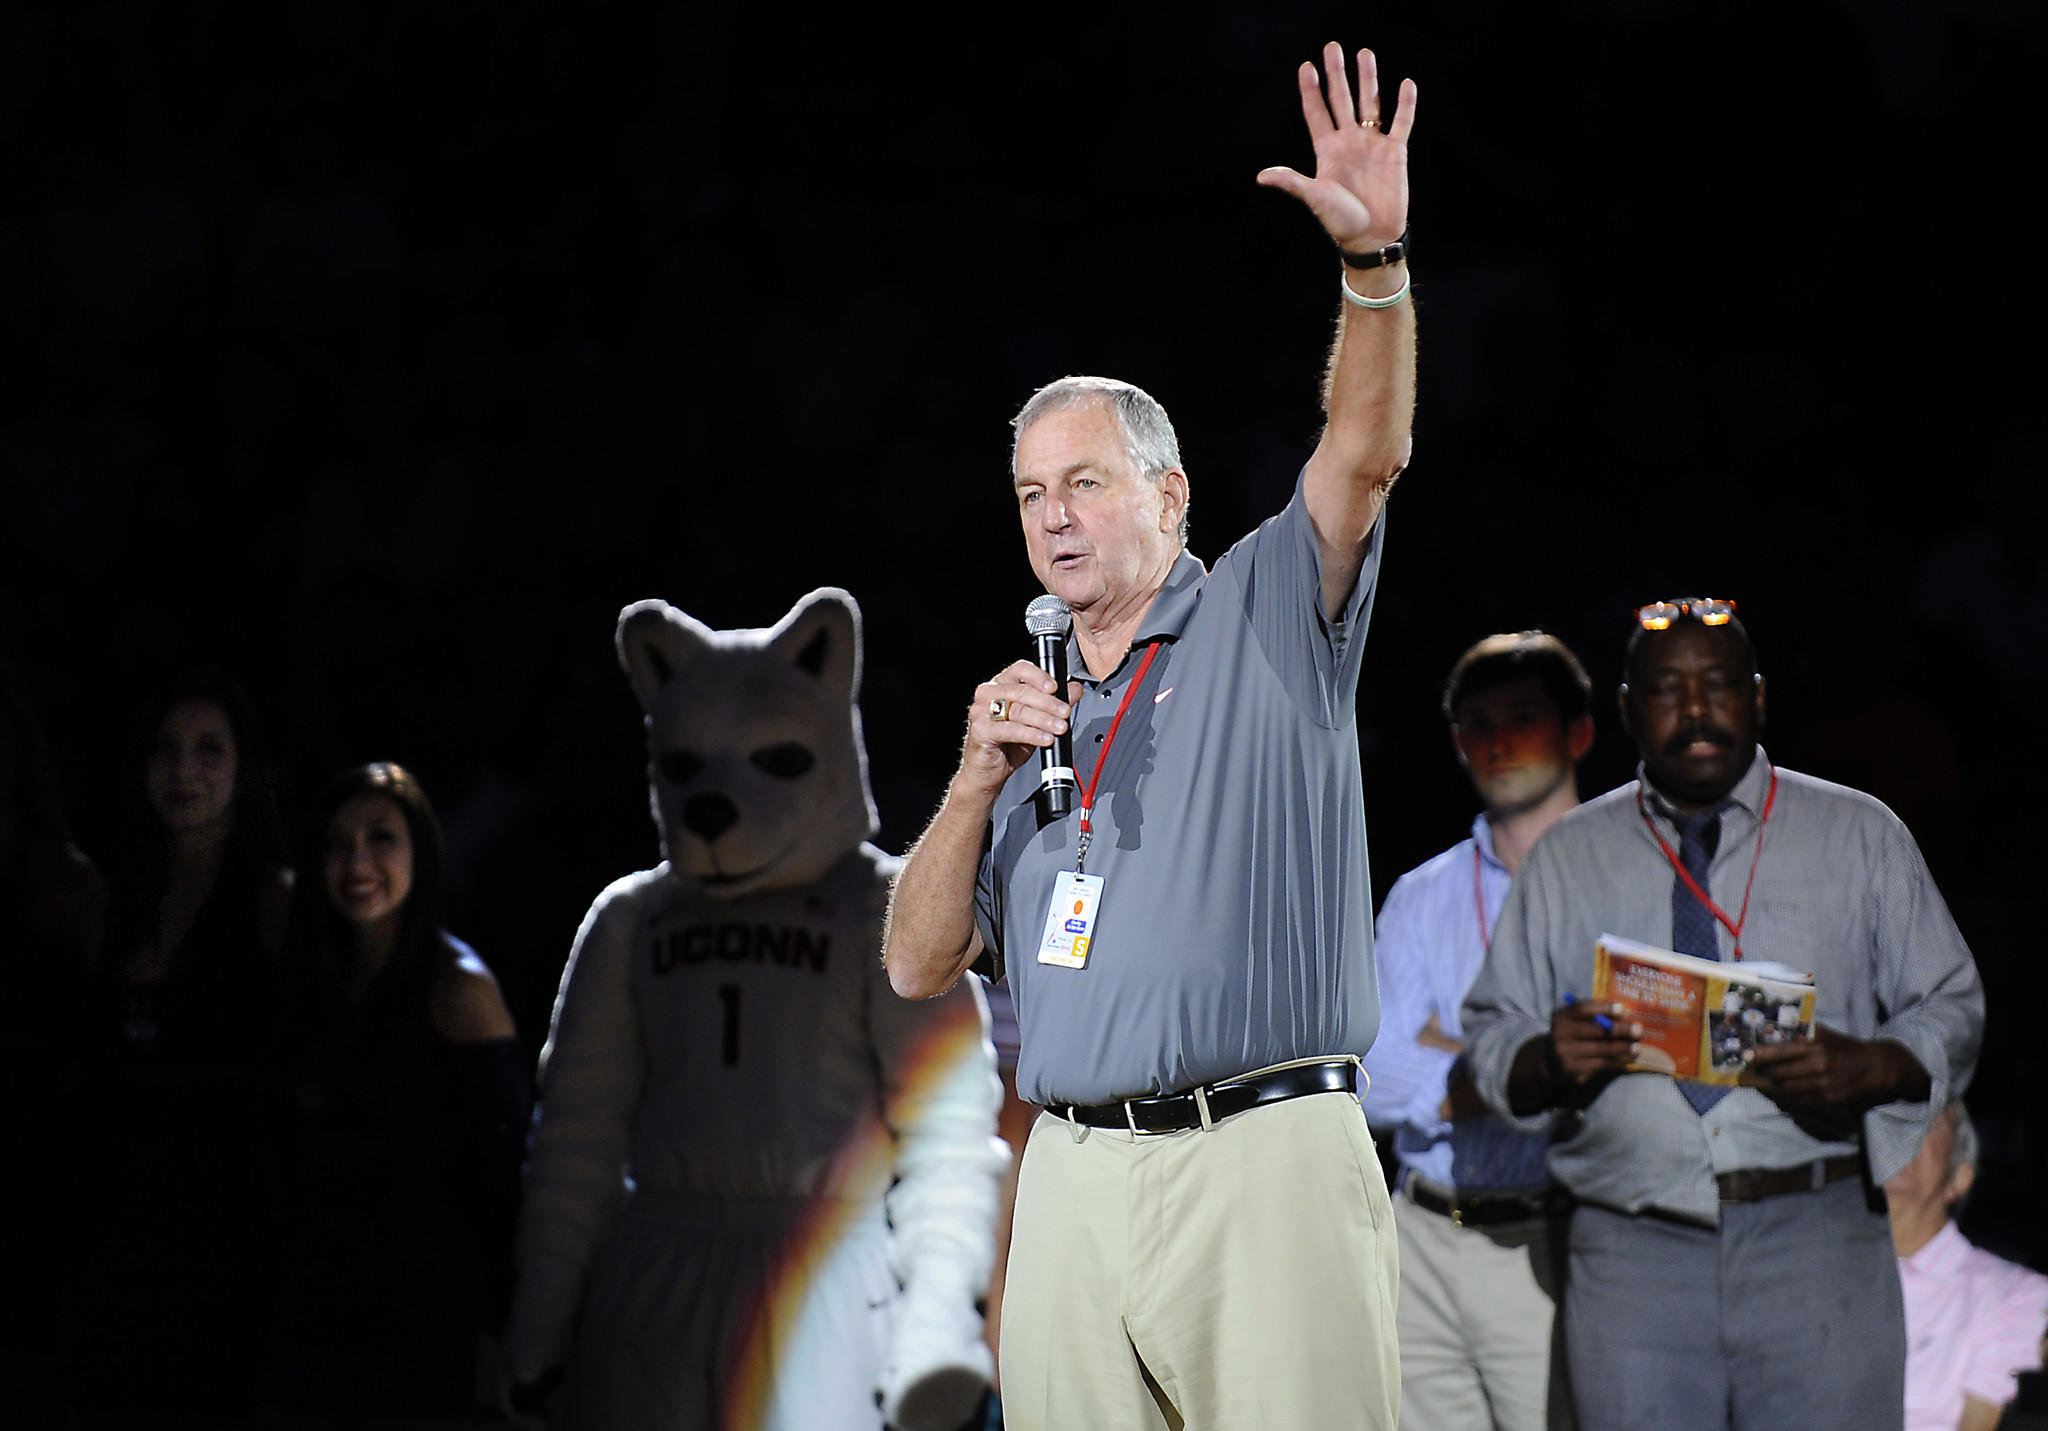 Jim Calhoun thanks the fans and players that came out for his annual Celebrity Classic basketball game at the Mohegan Sun Arena Friday night in Uncasville.